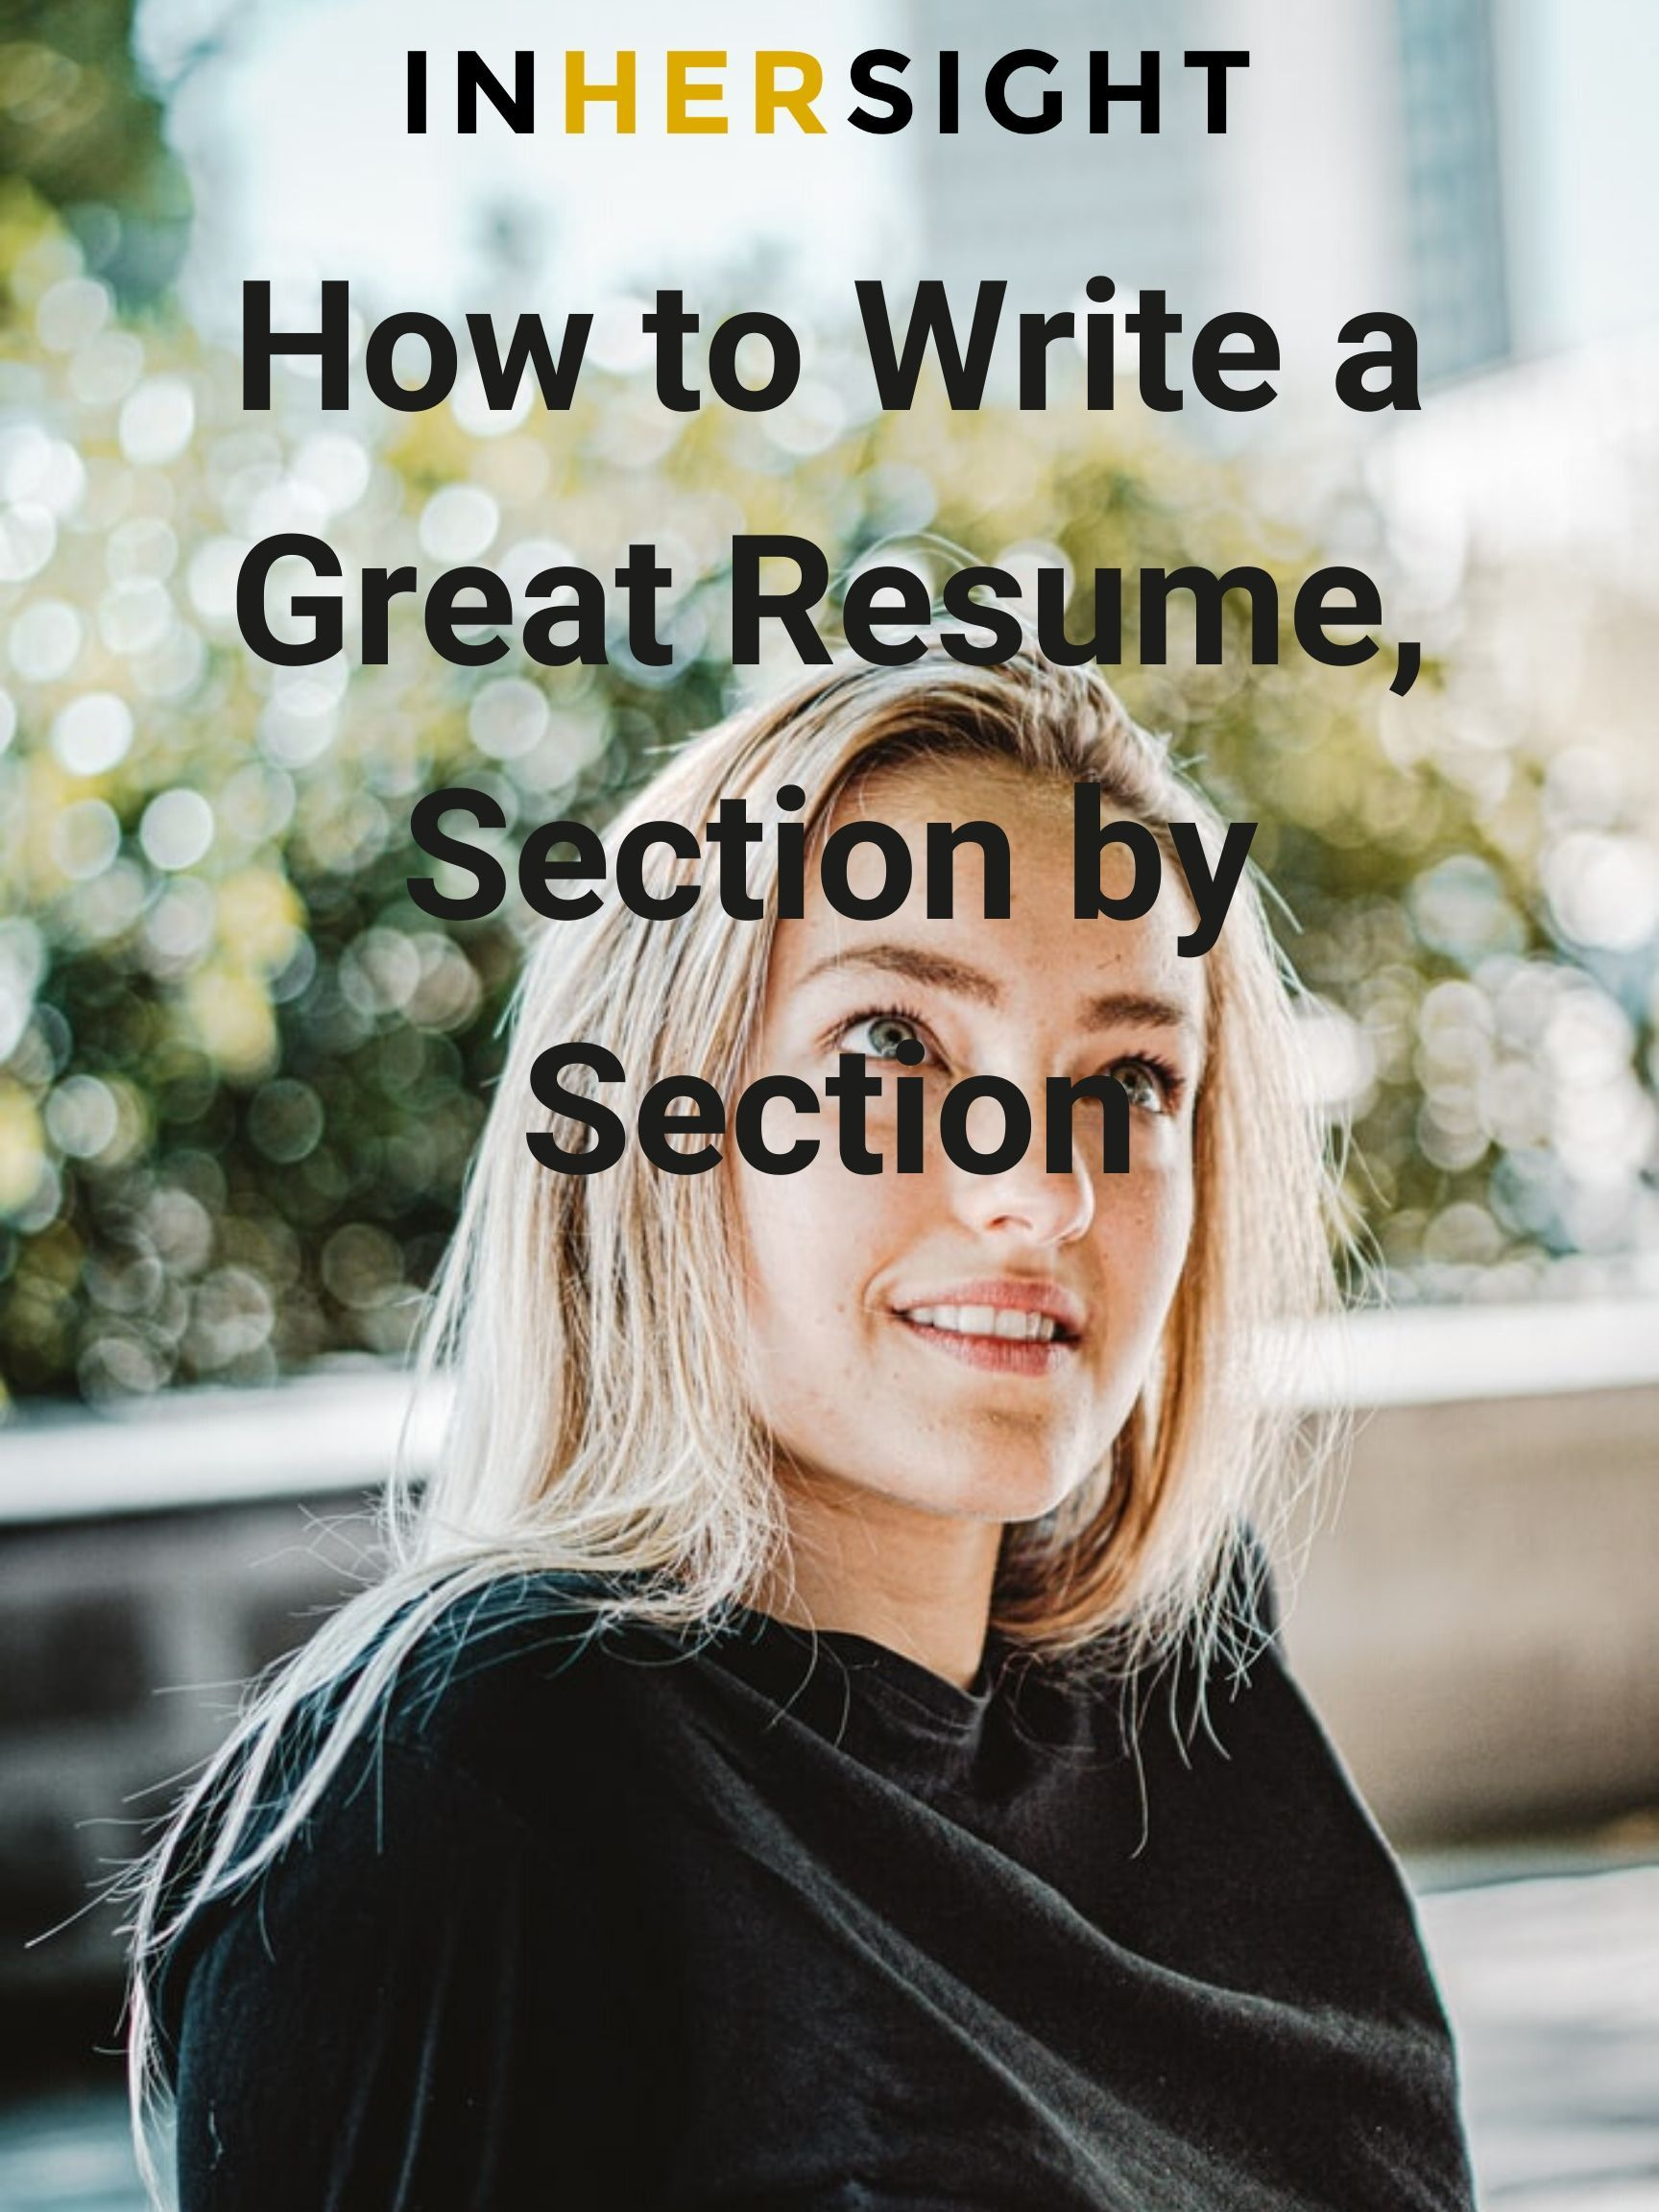 How to write a great resume section by section in 2020